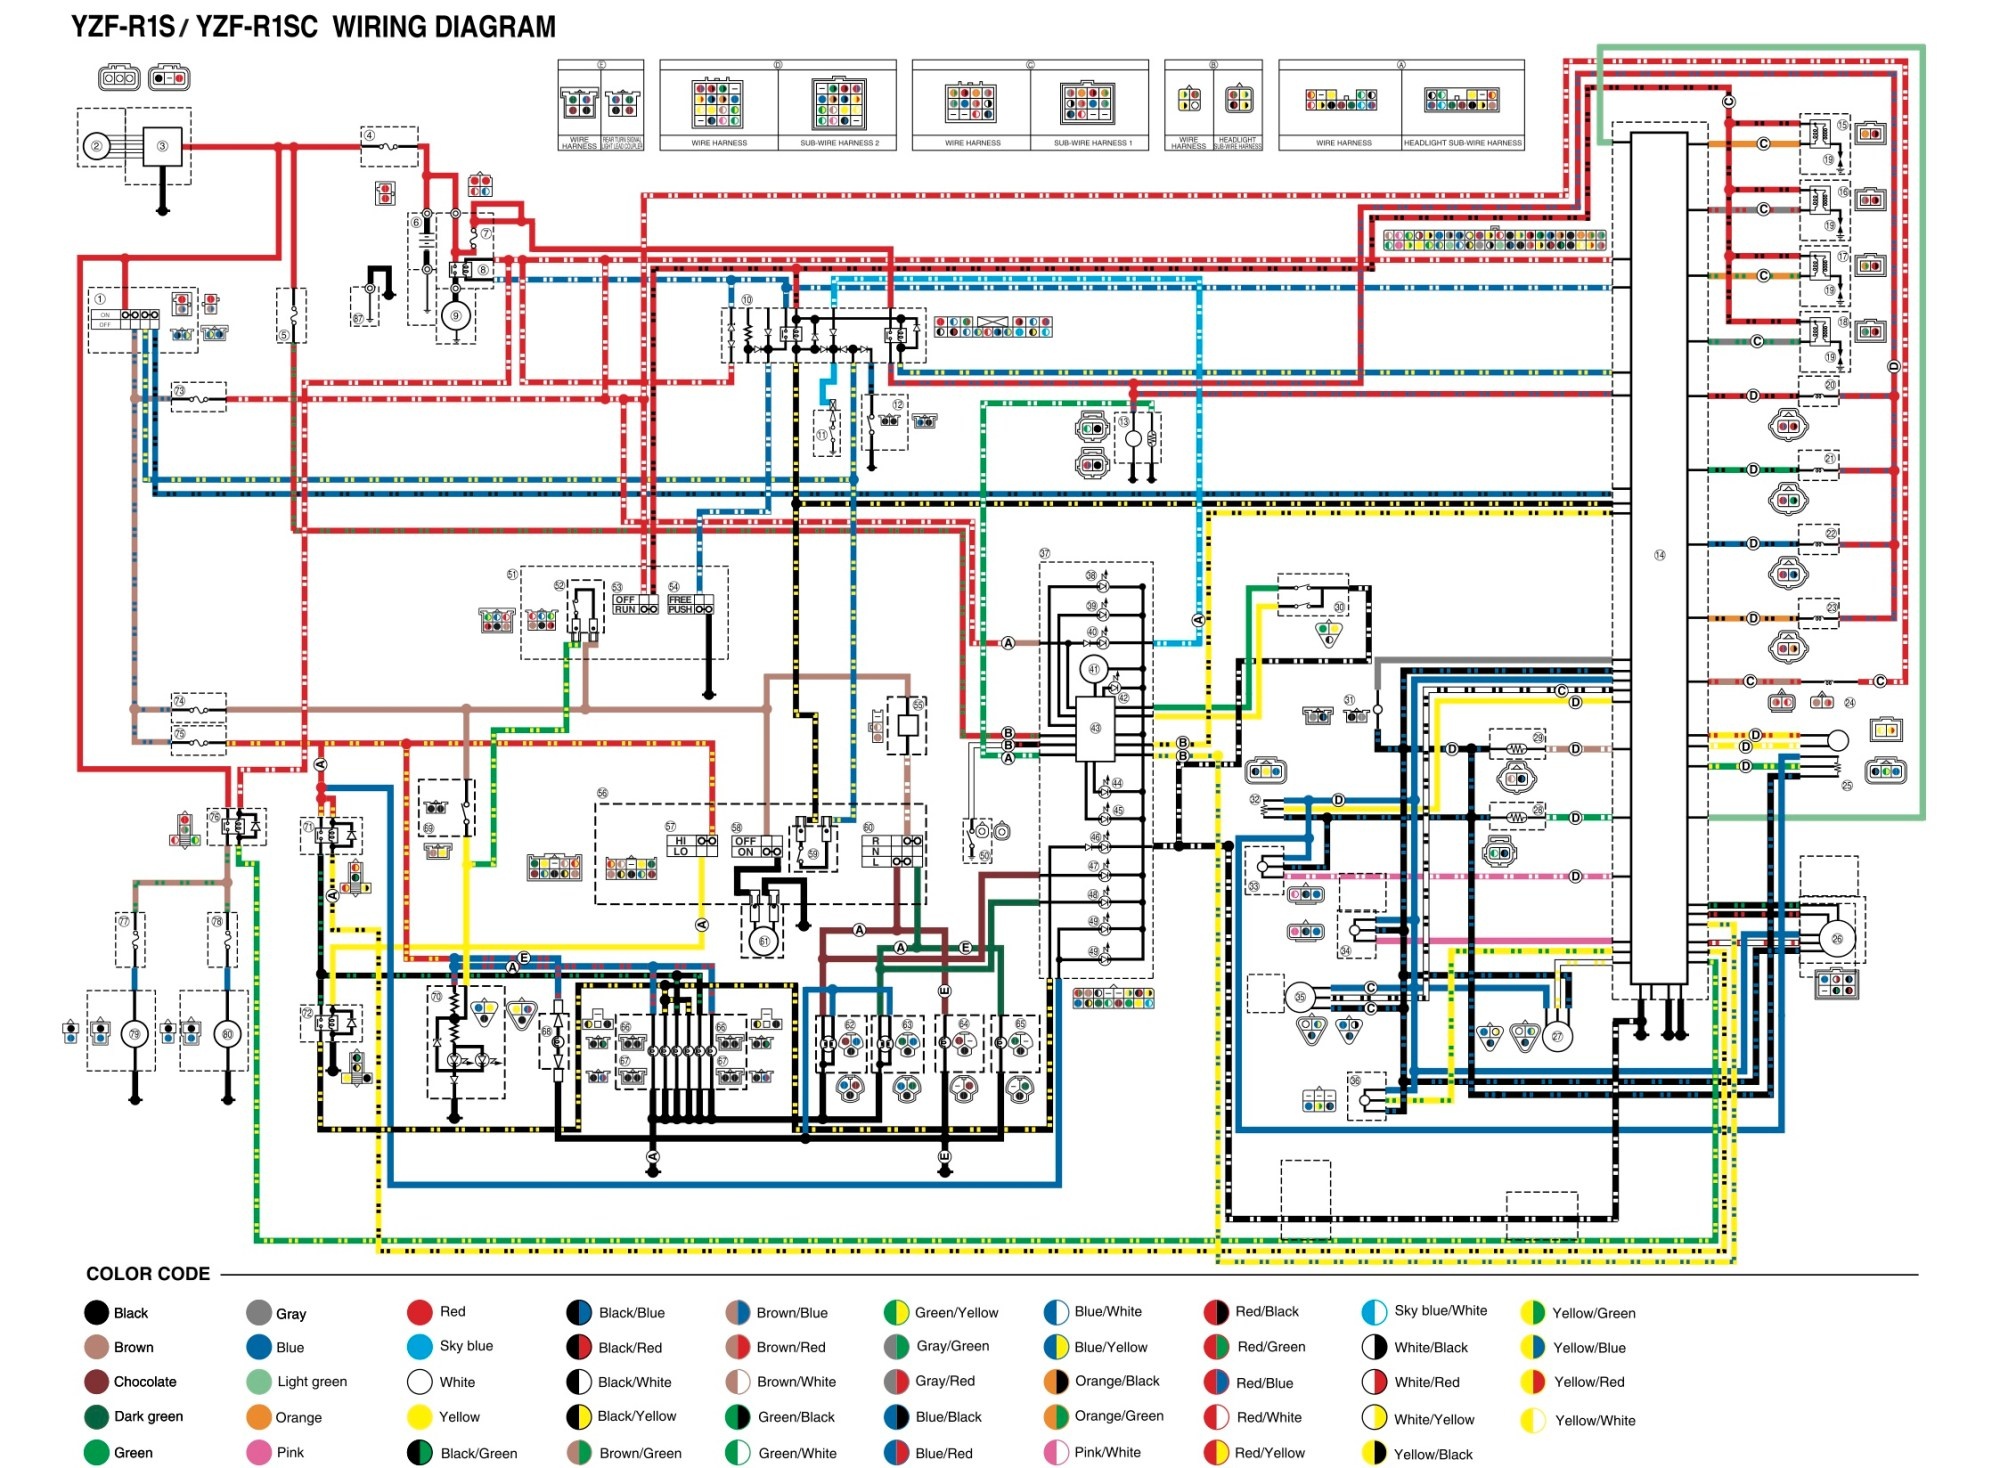 hight resolution of yamaha rhino wiring schematic wiring diagrams mon yamaha grizzly 700 wiring diagram yamaha rhino wiring schematic